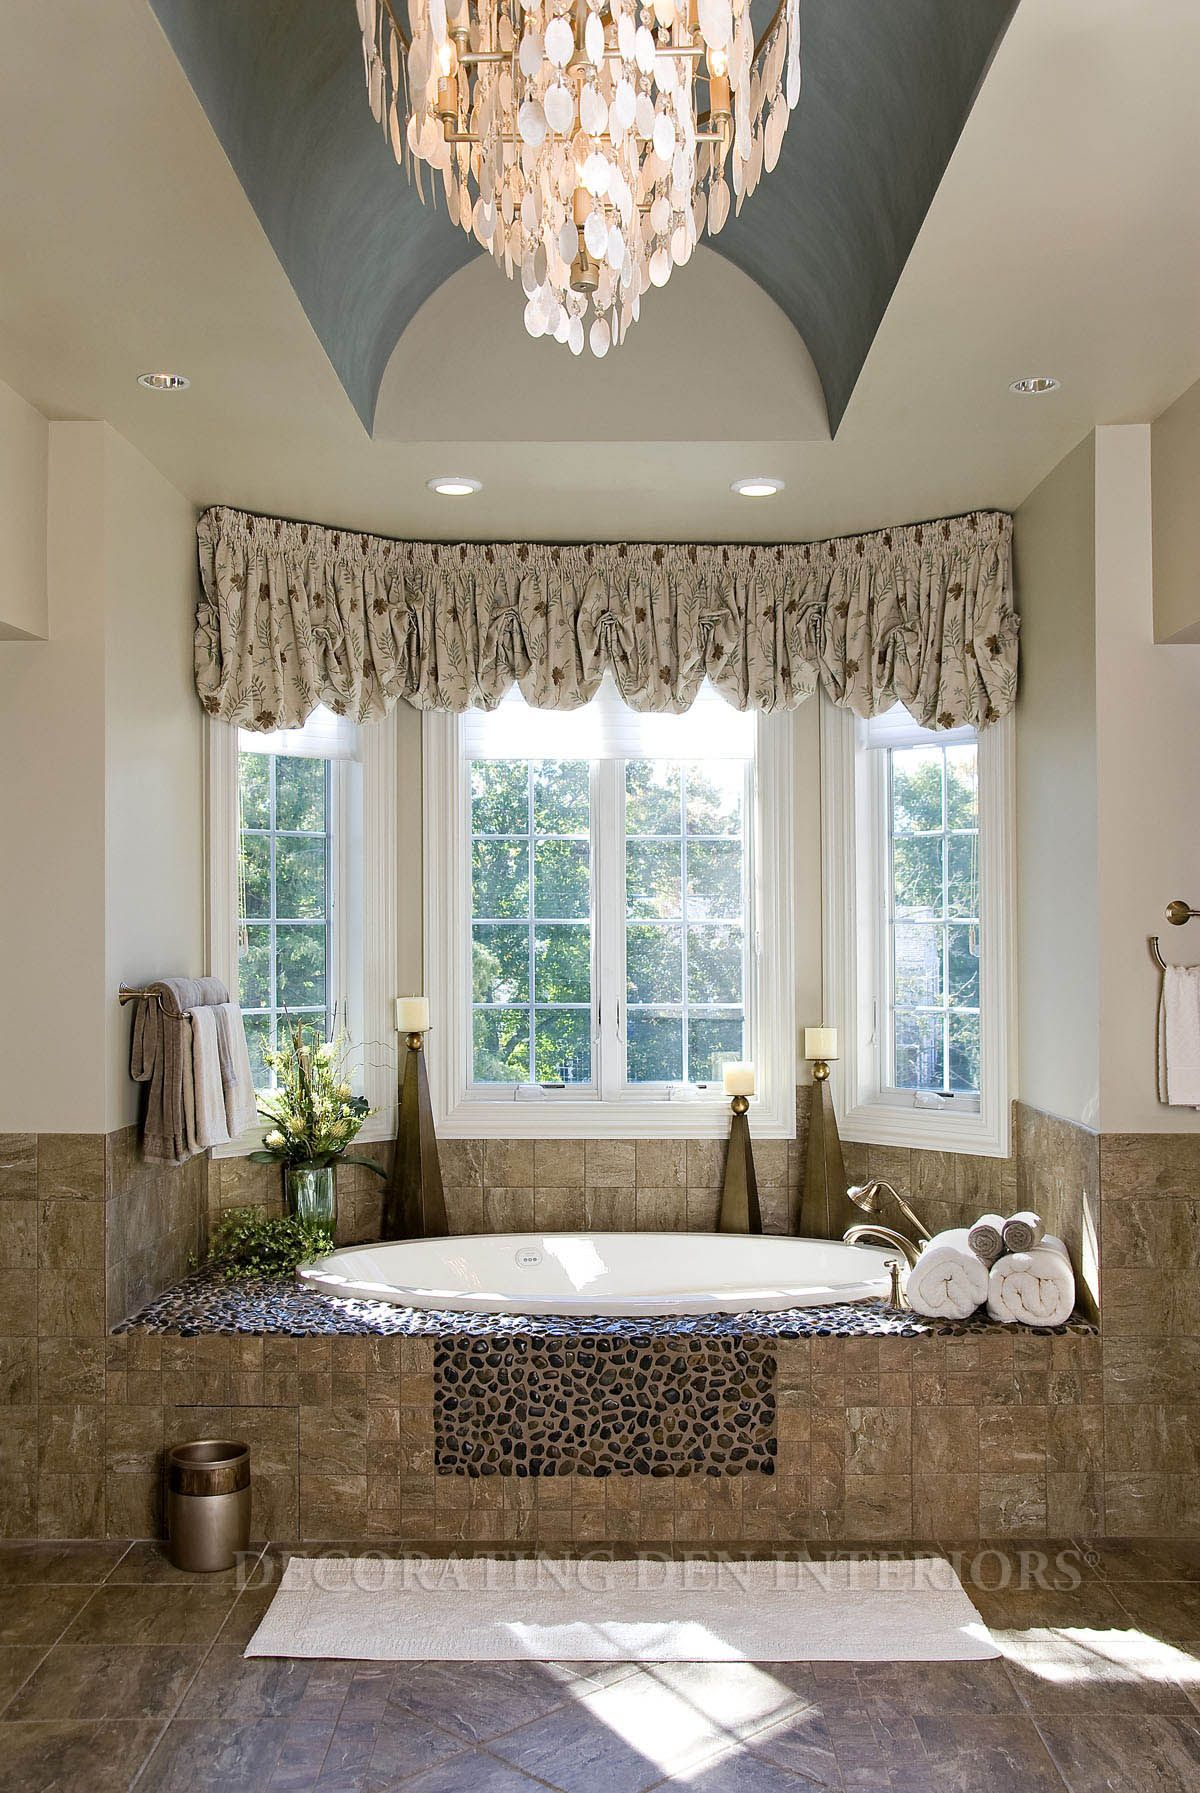 Bathroom designs by Decorating Den Interiors. Want this look? Call ...